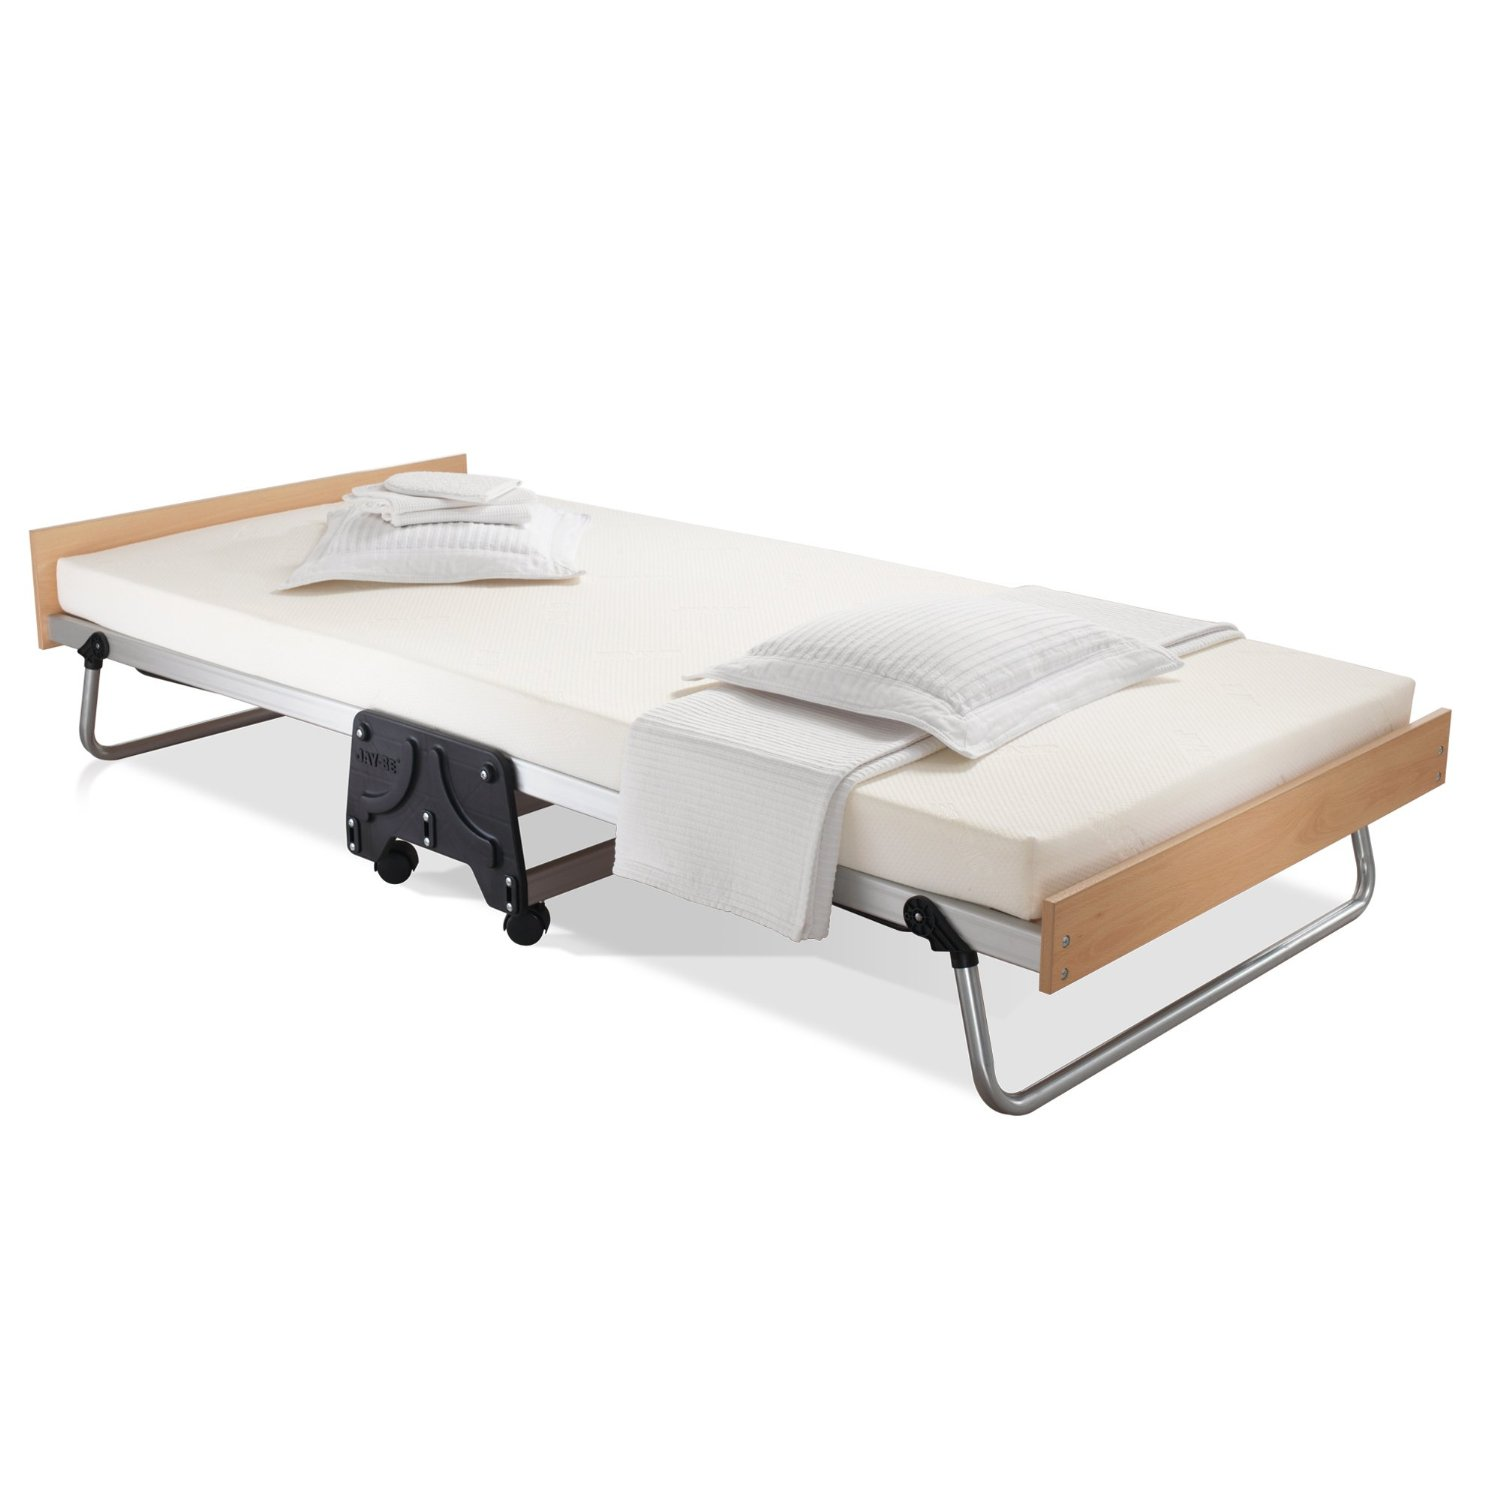 a450d589f10 JAY-BE J-Bed Folding Bed with Aluminum Frame and Memory Foam Mattress